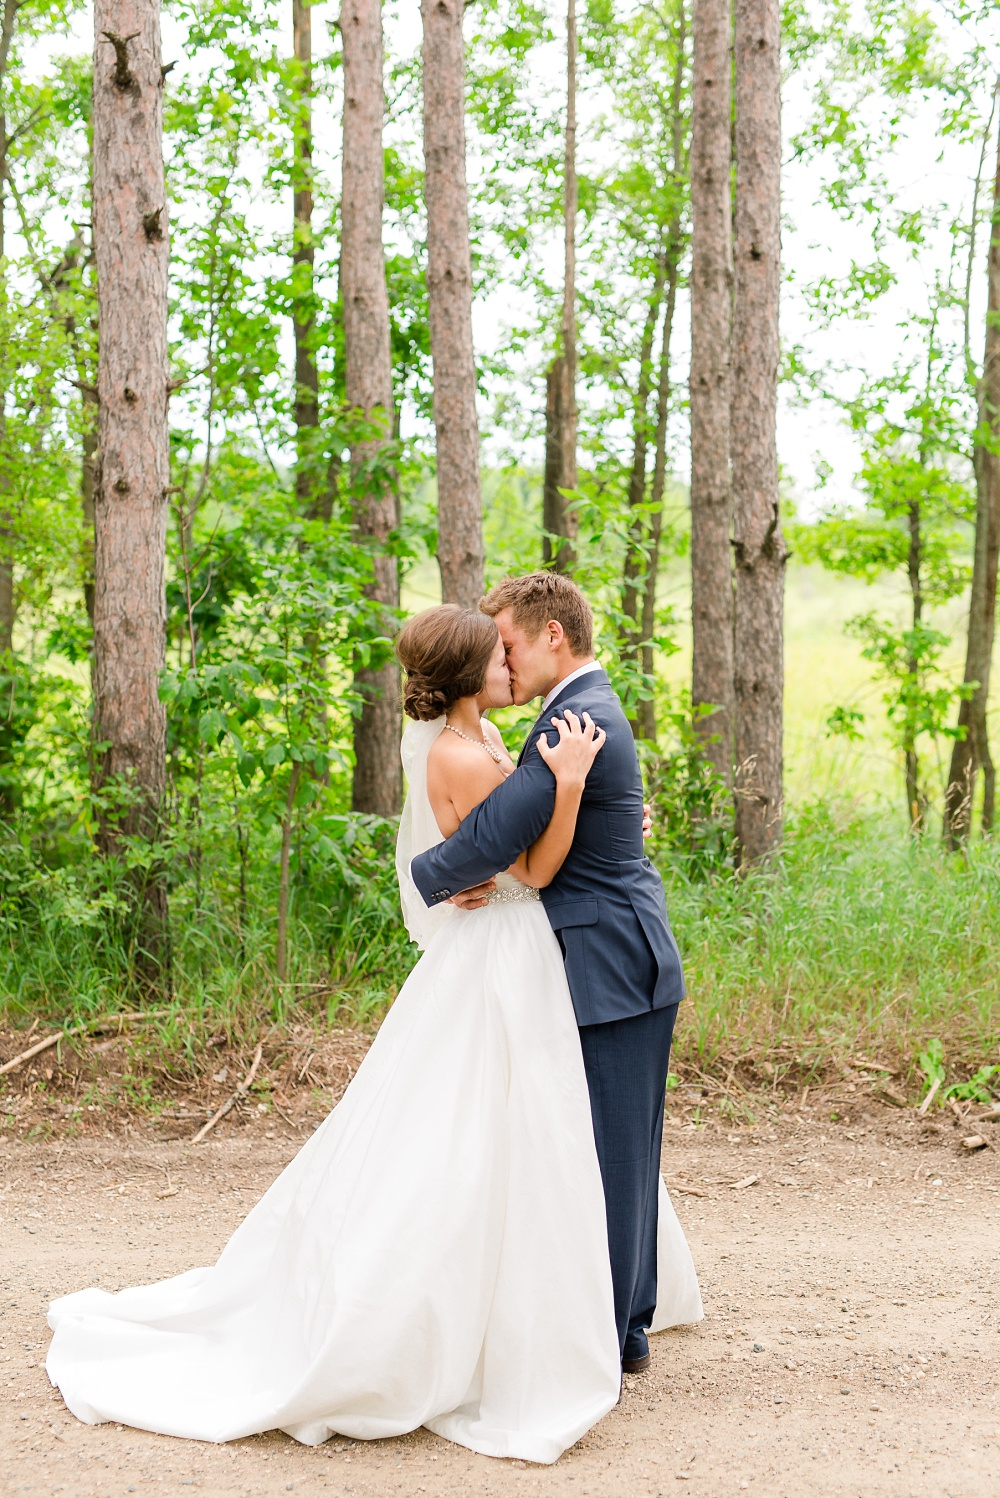 Wolf Lake, MN Country Styled Wedding, White Dress, Blue Suite | Photographed by Amber Langerud Photography | Bride and Groom Hugging after first look